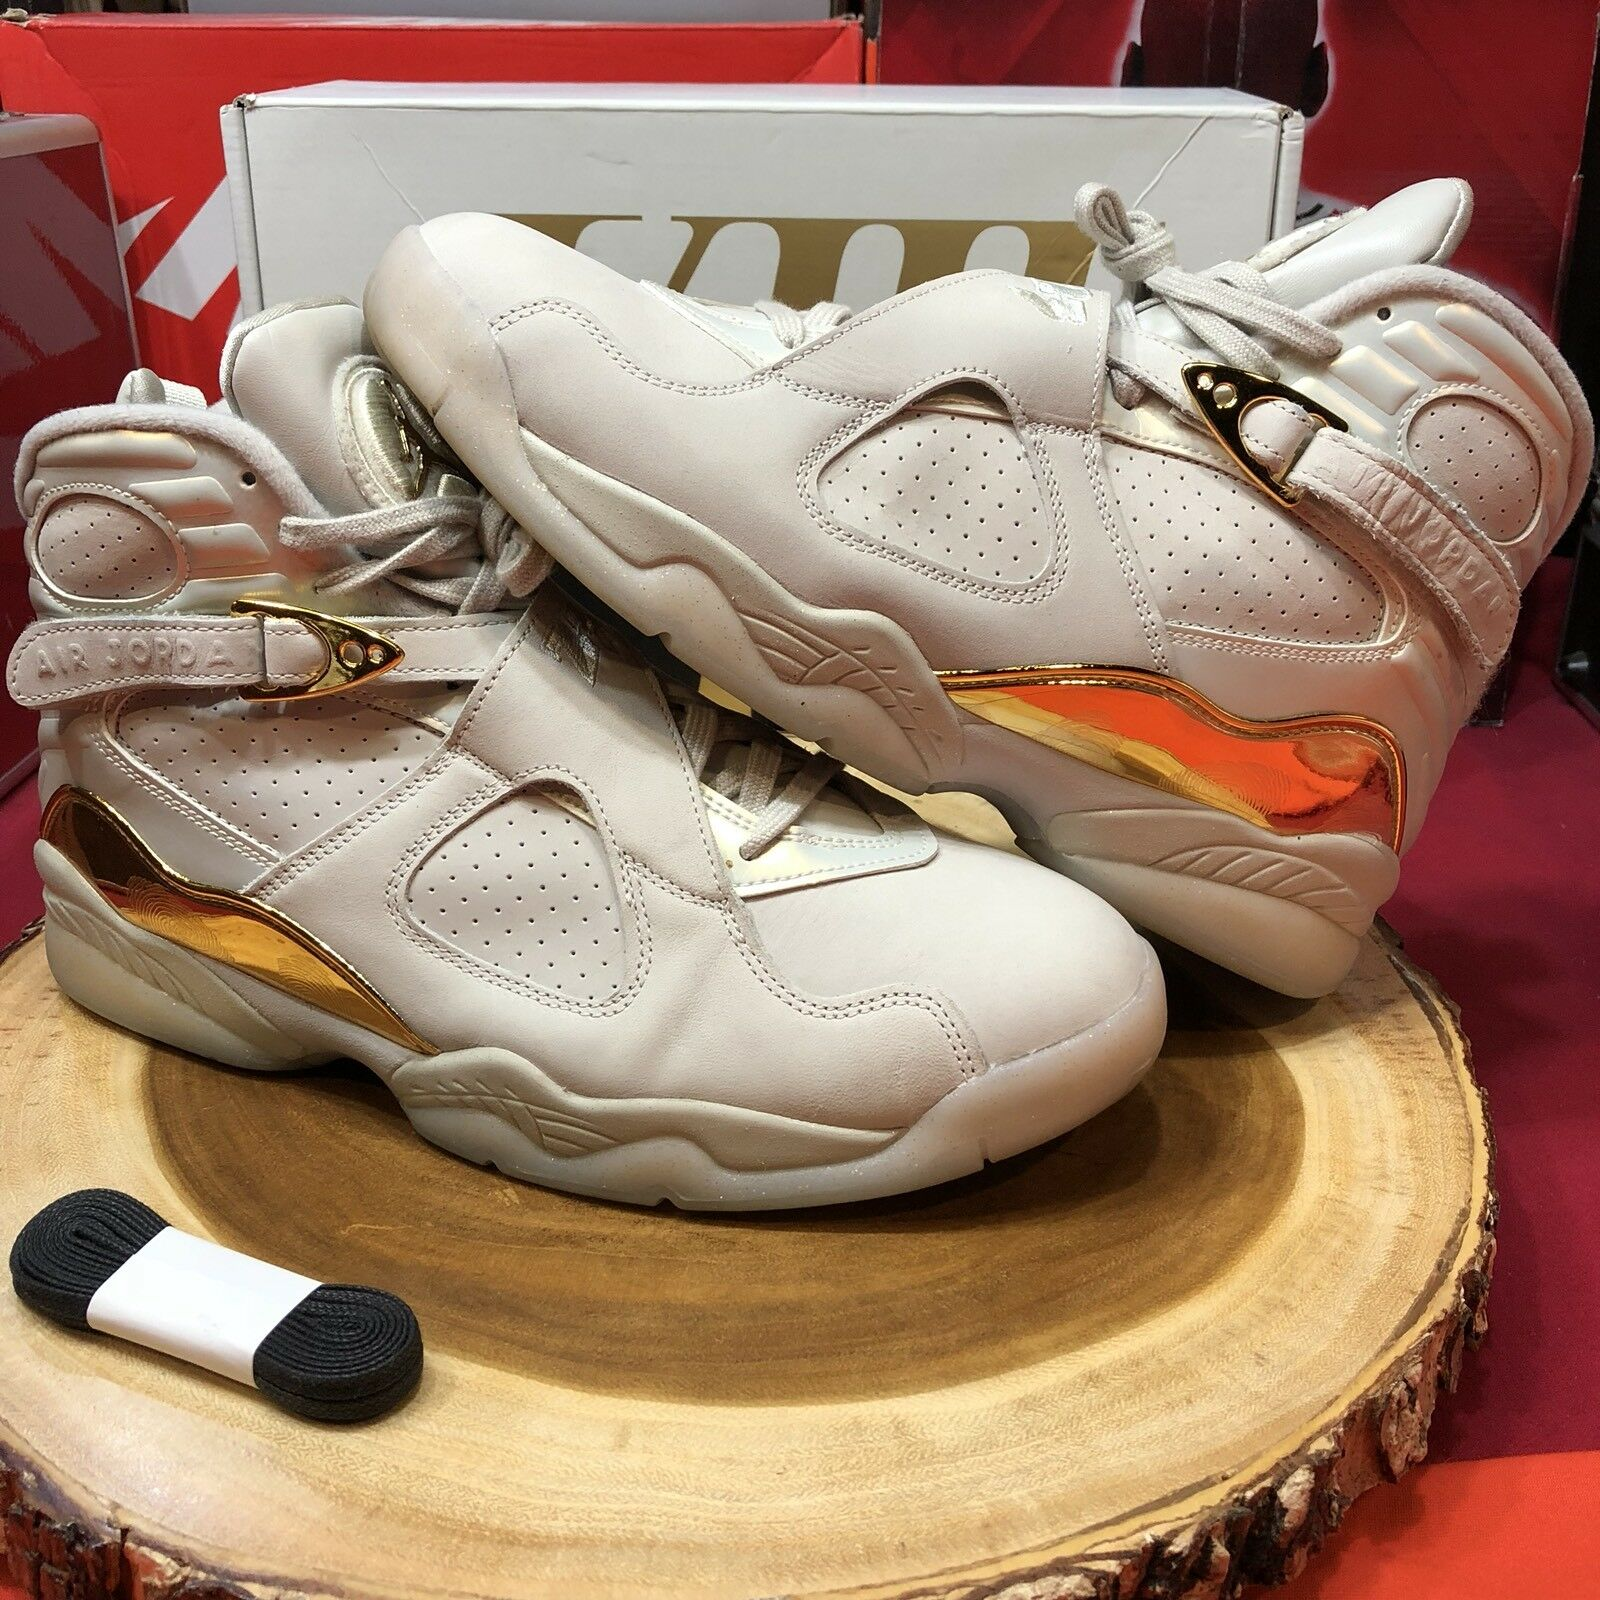 Nike Air Jordan Retro VIII 8 C&C Championship Trophy 832821 030 Comfortable New shoes for men and women, limited time discount